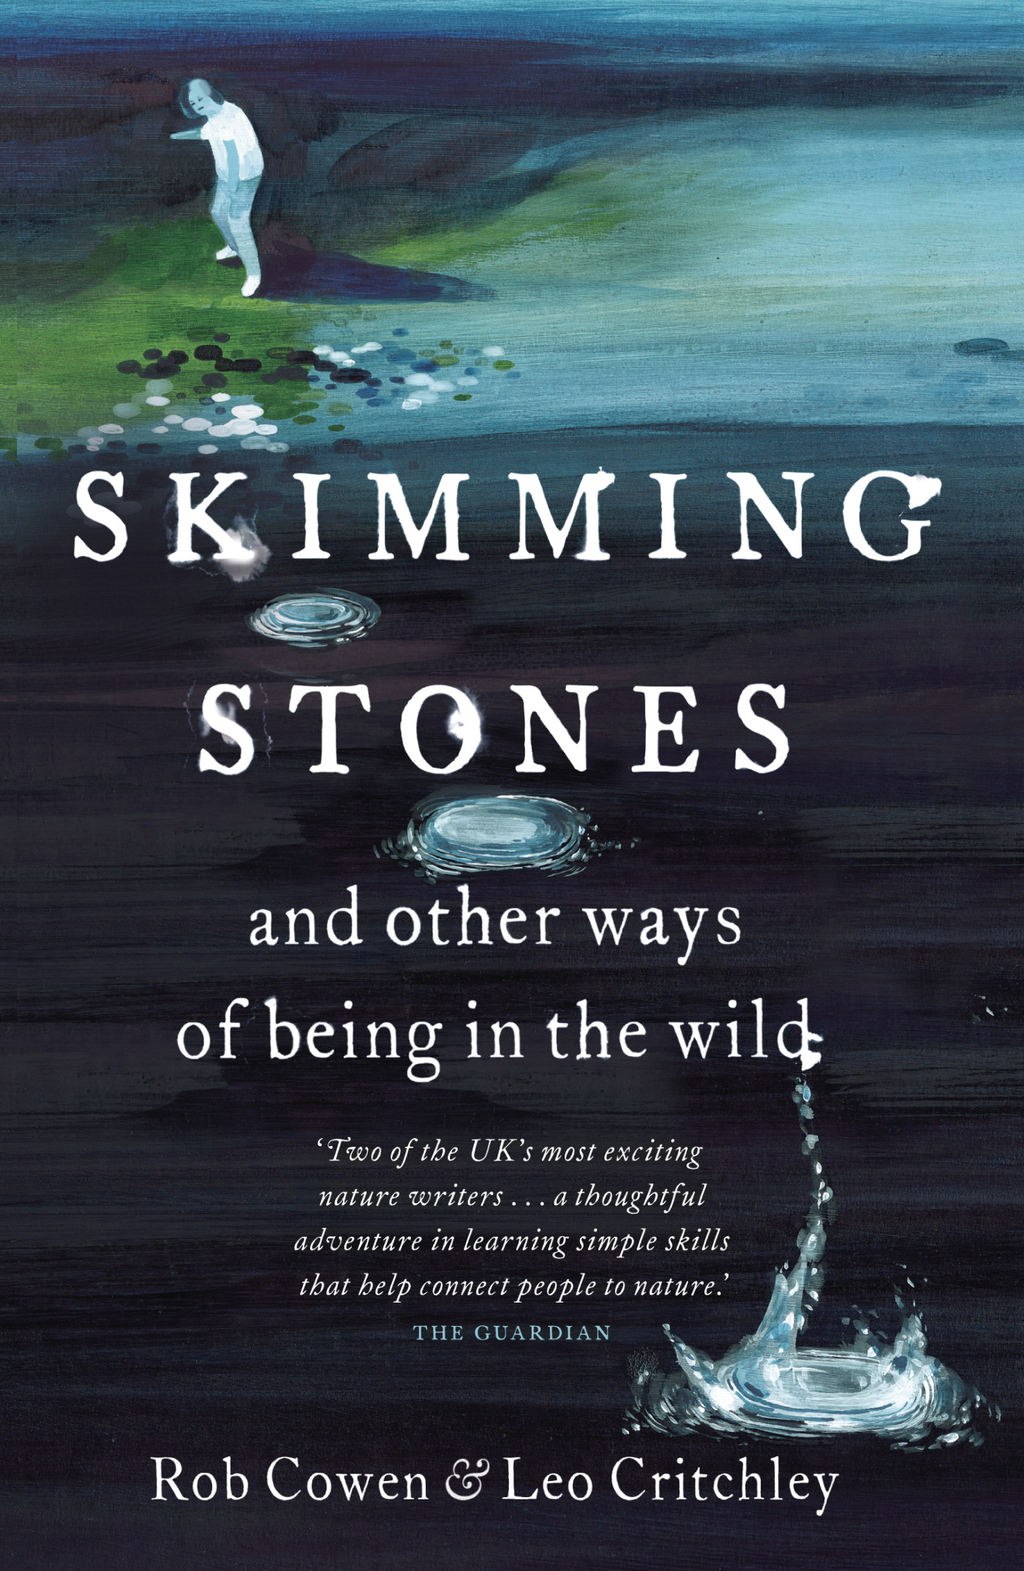 Skimming Stones and other ways of being in the wild